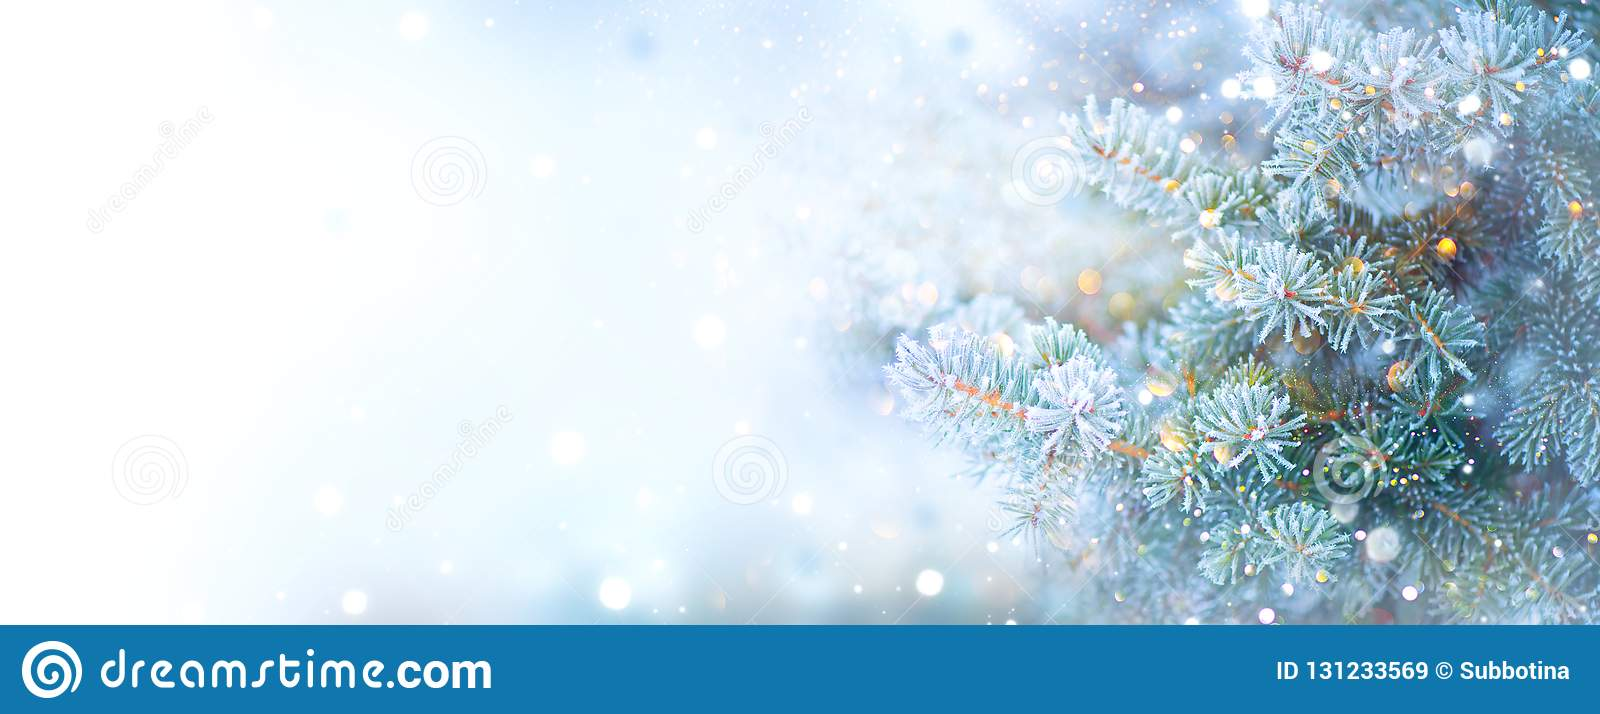 Christmas Holiday Tree. Border Snow Background. Snowflakes